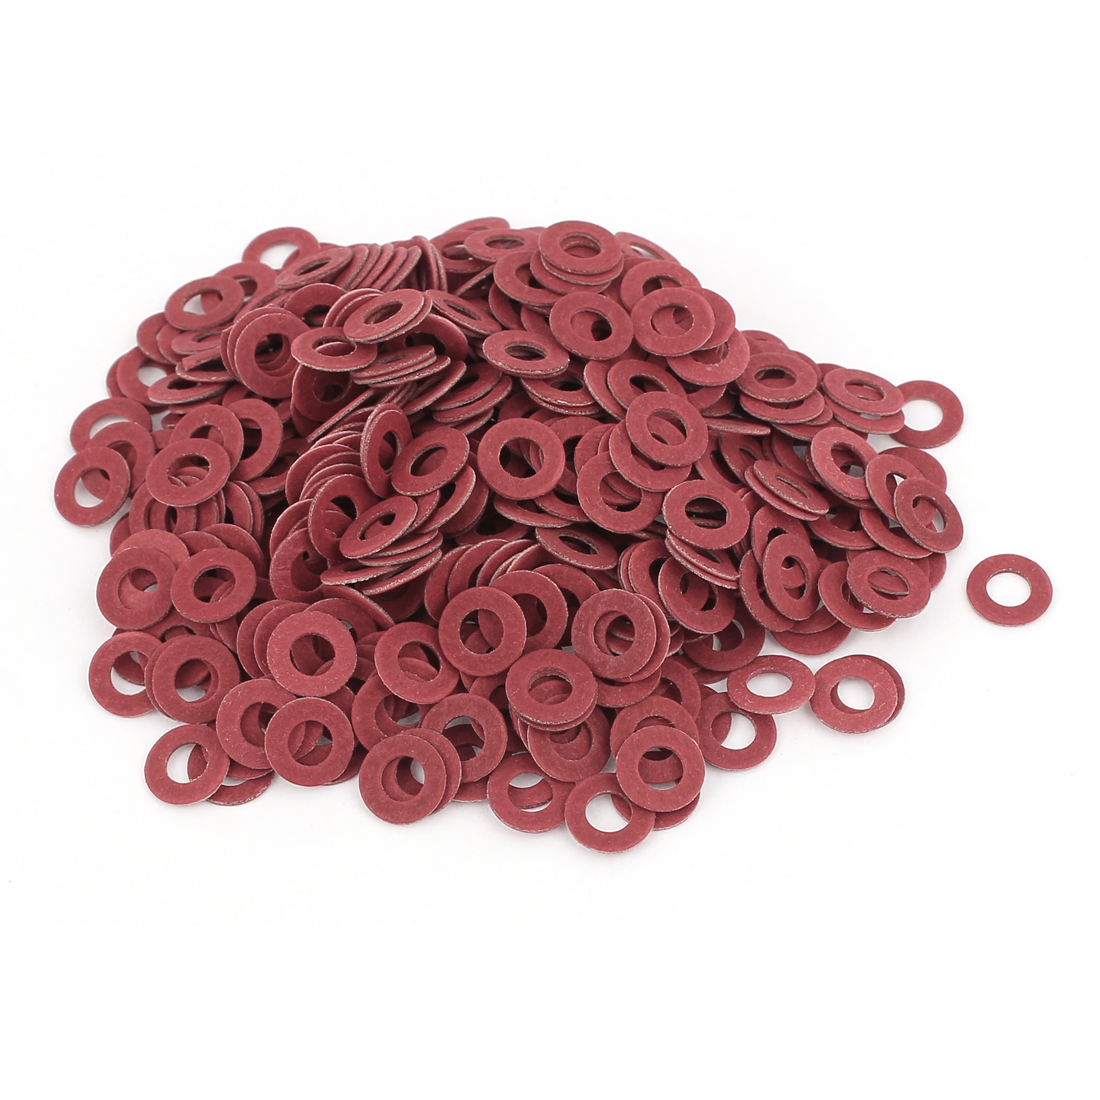 Fiber Flat Insulating Washer Ring 4mmx8mmx0.8mm 500Pcs Red for Screws